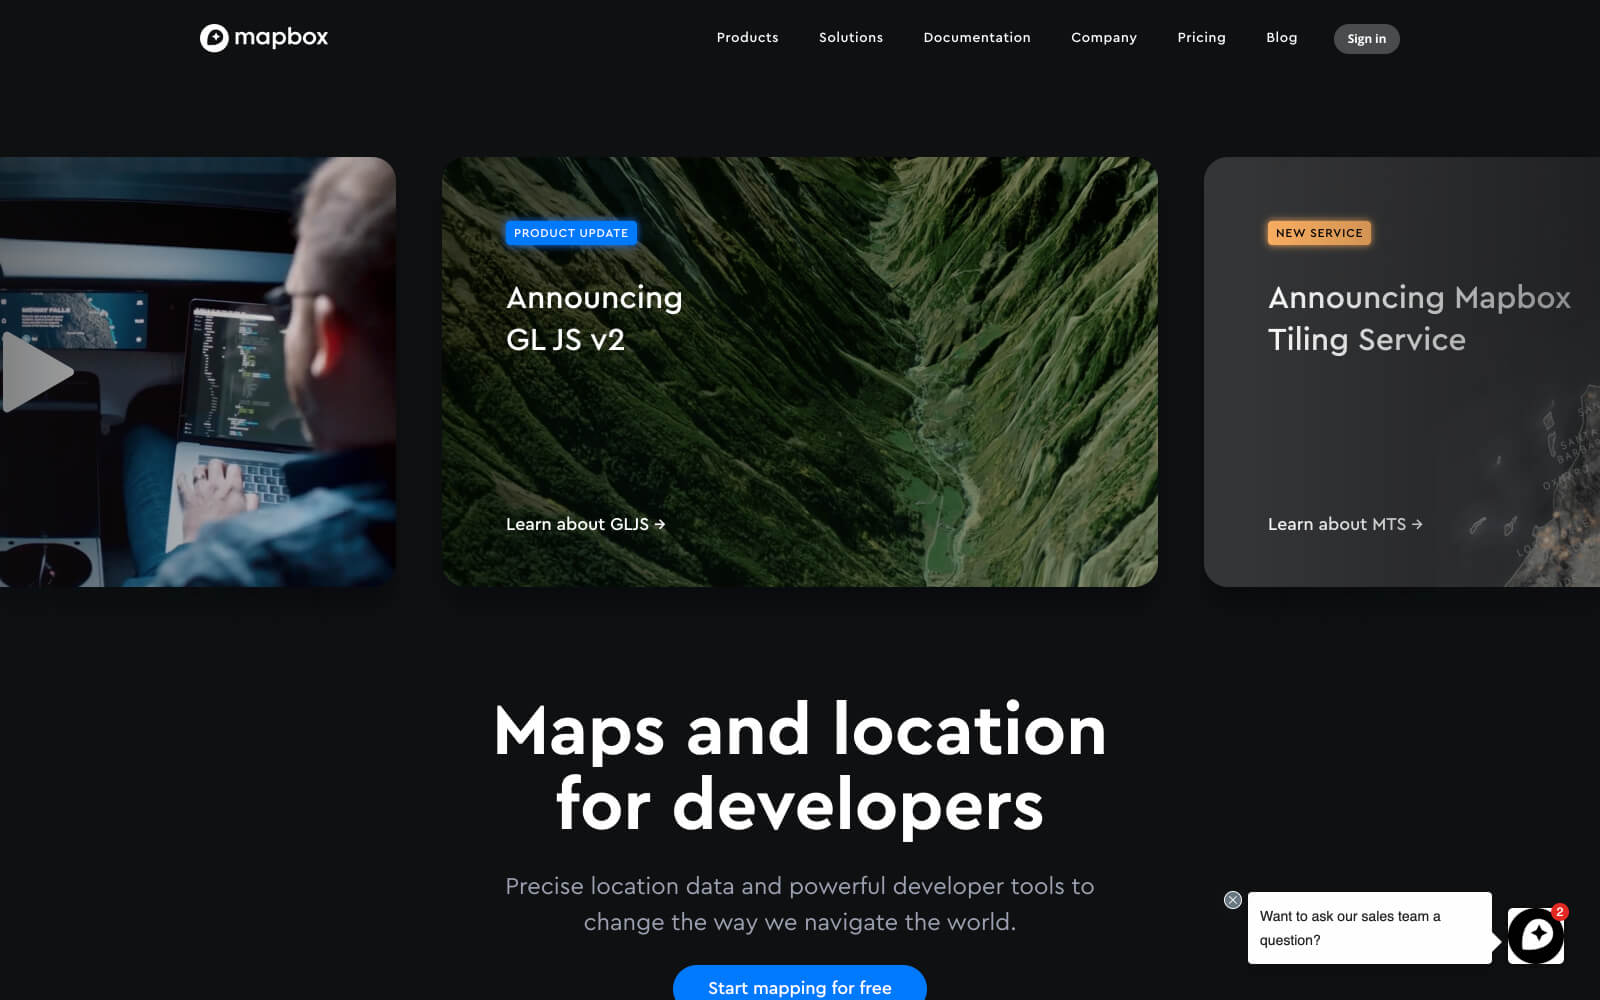 """The Mapbox website utilizes a large statement of """"Maps and location for developers"""" below sliding cards announcing product updates and news against a black background."""